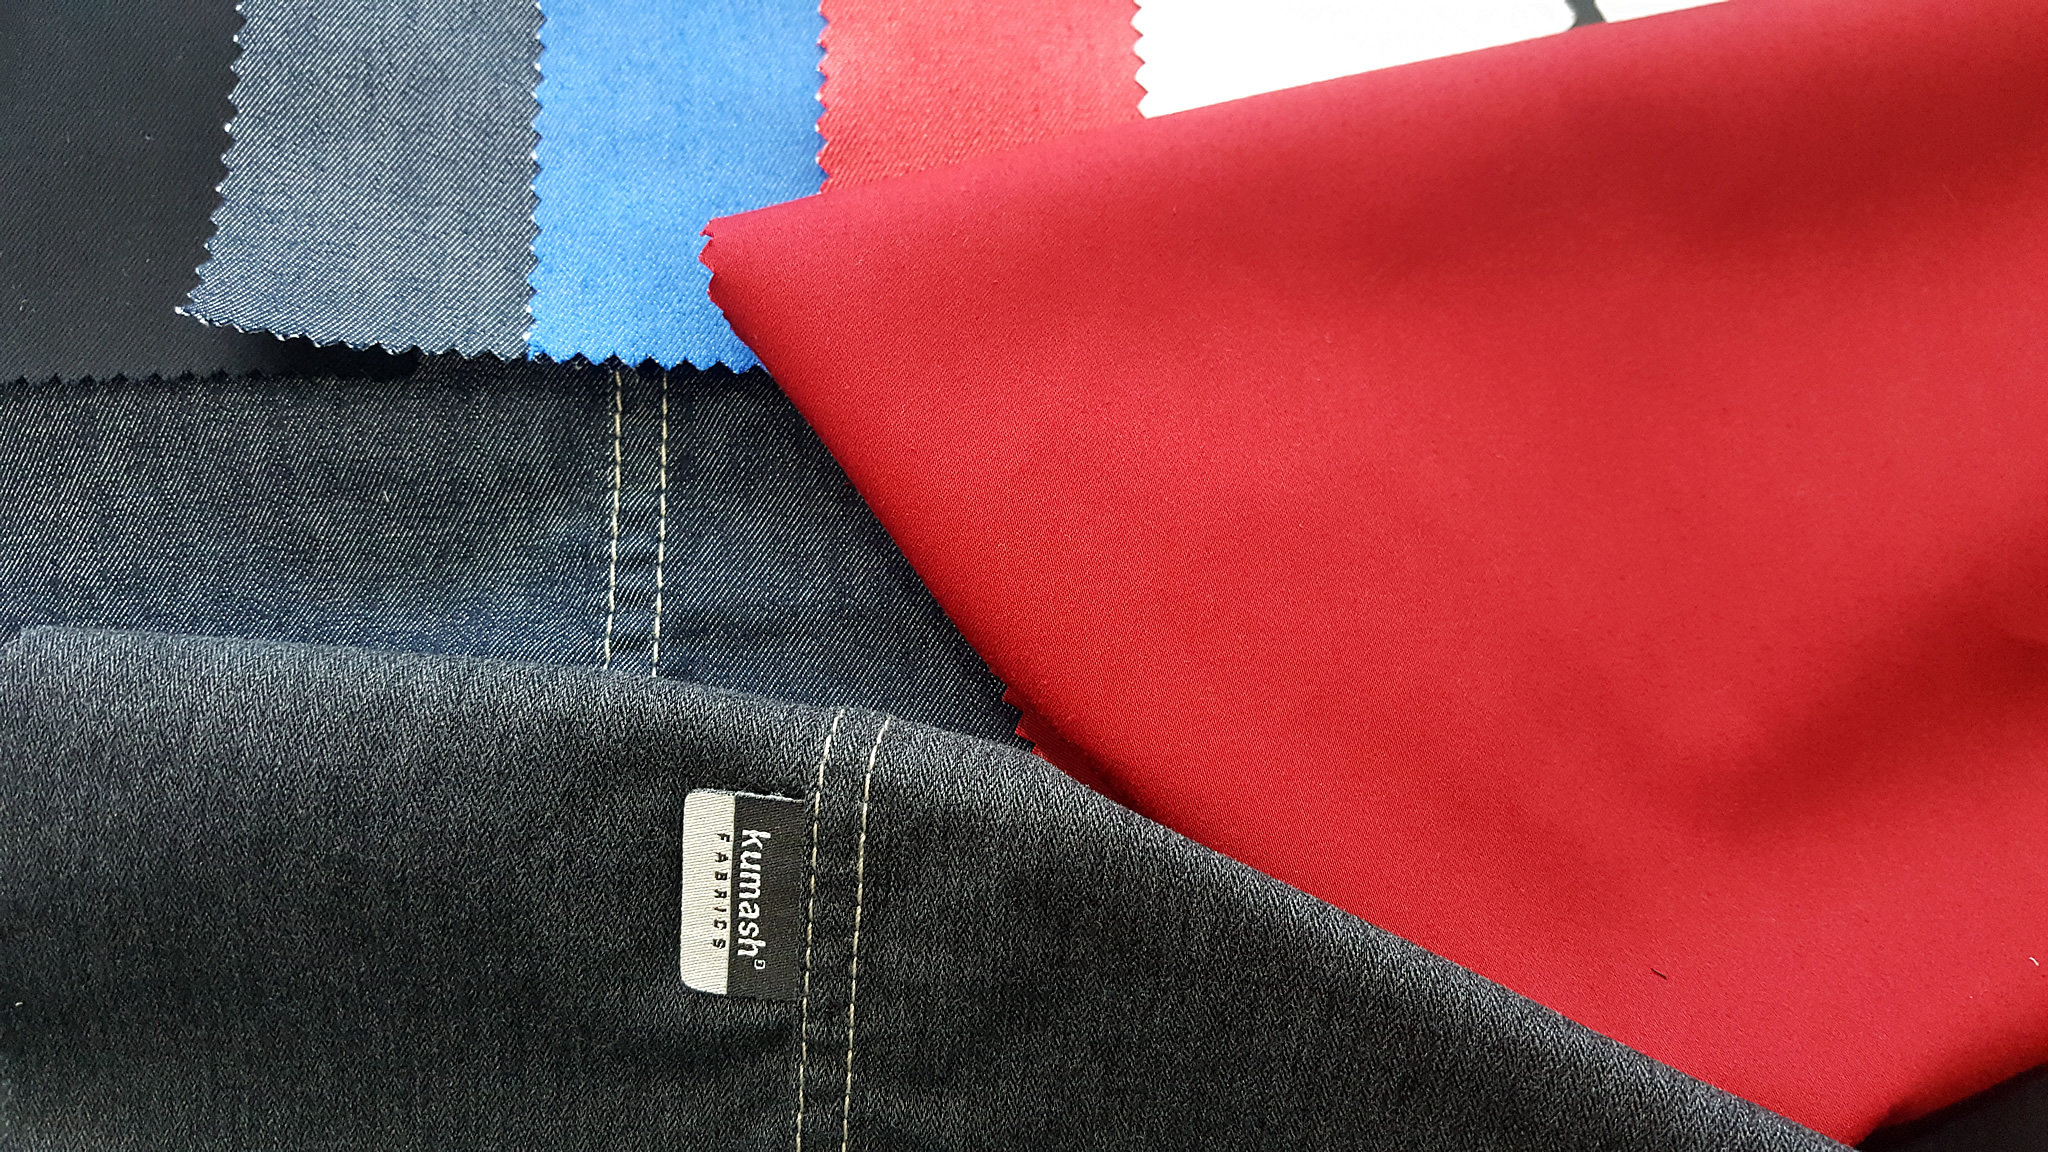 Cotton-Nylon & Cotton-Polyester Mono Stretch, Bi-Stretch and Power Stretch fabrics